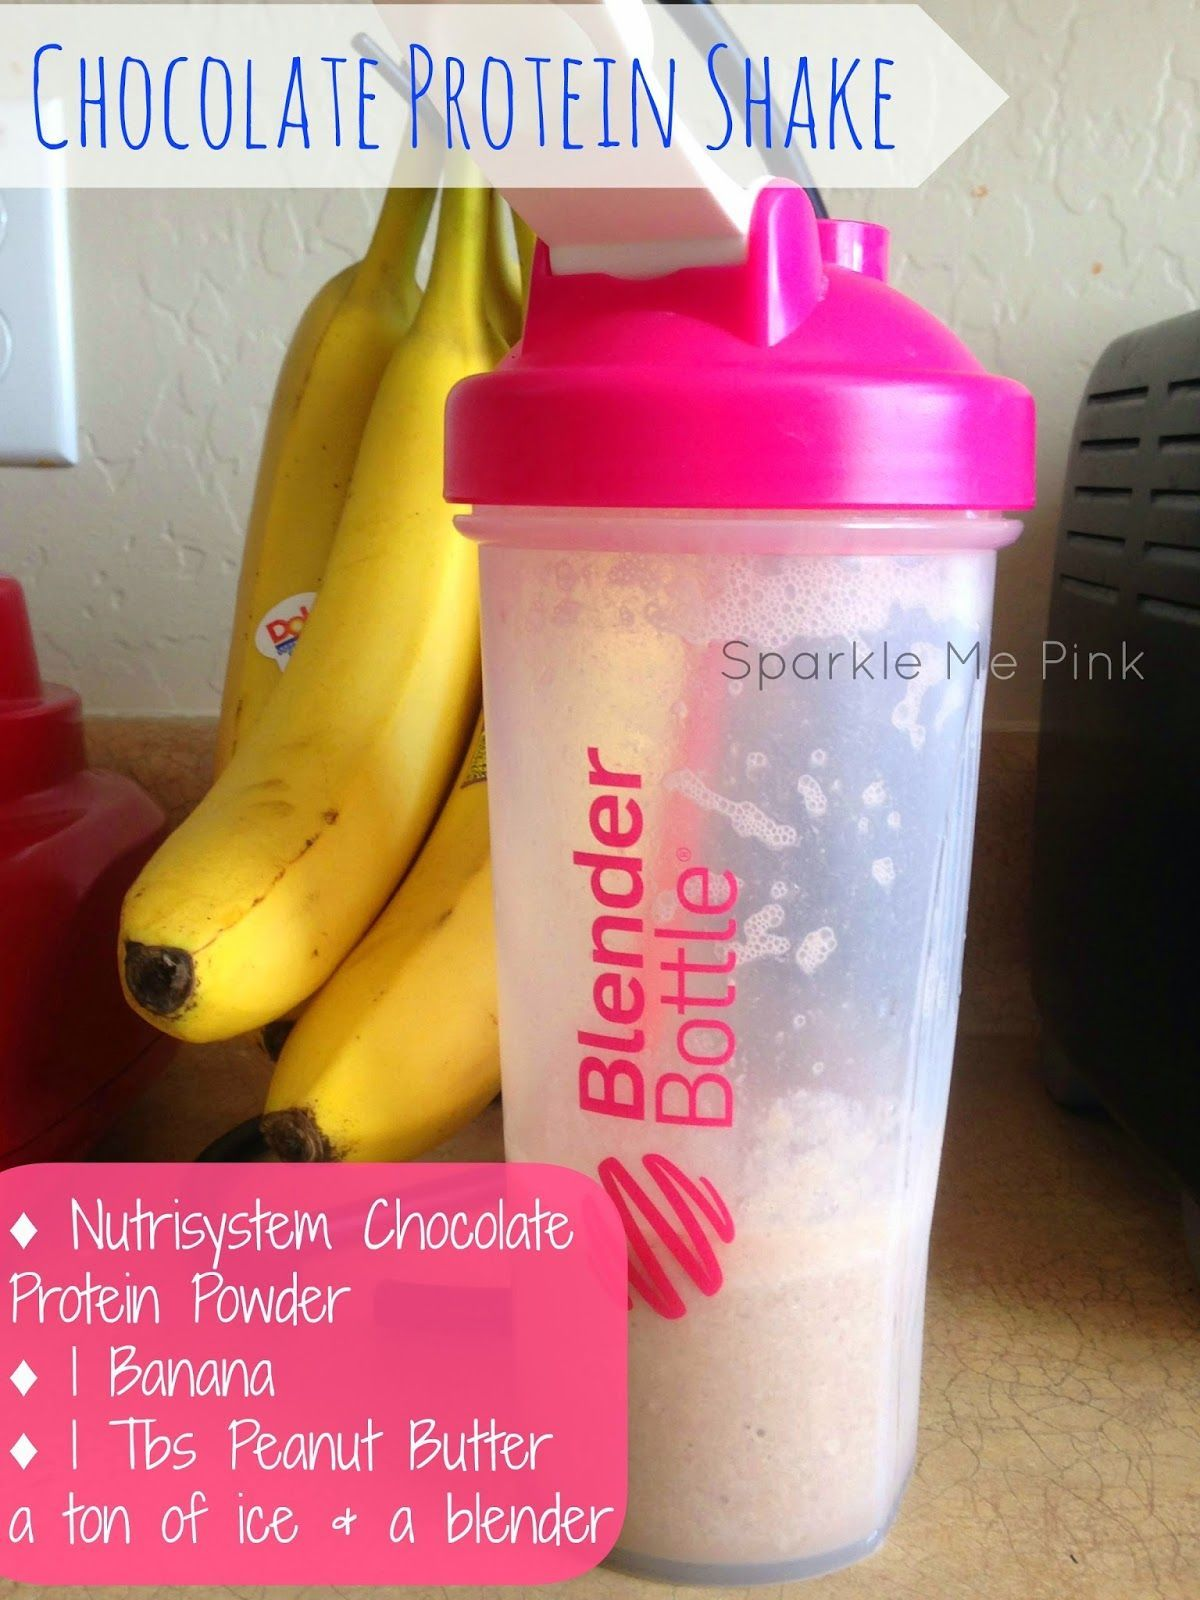 Nutrisystem Chocolate Protein Shake Blender Bottle WEEK TWO Update Chocolate Protein Shake  Blender Bottle  WEEK TWO Update | Meal Inspirations, Transition Week + Video Weigh In